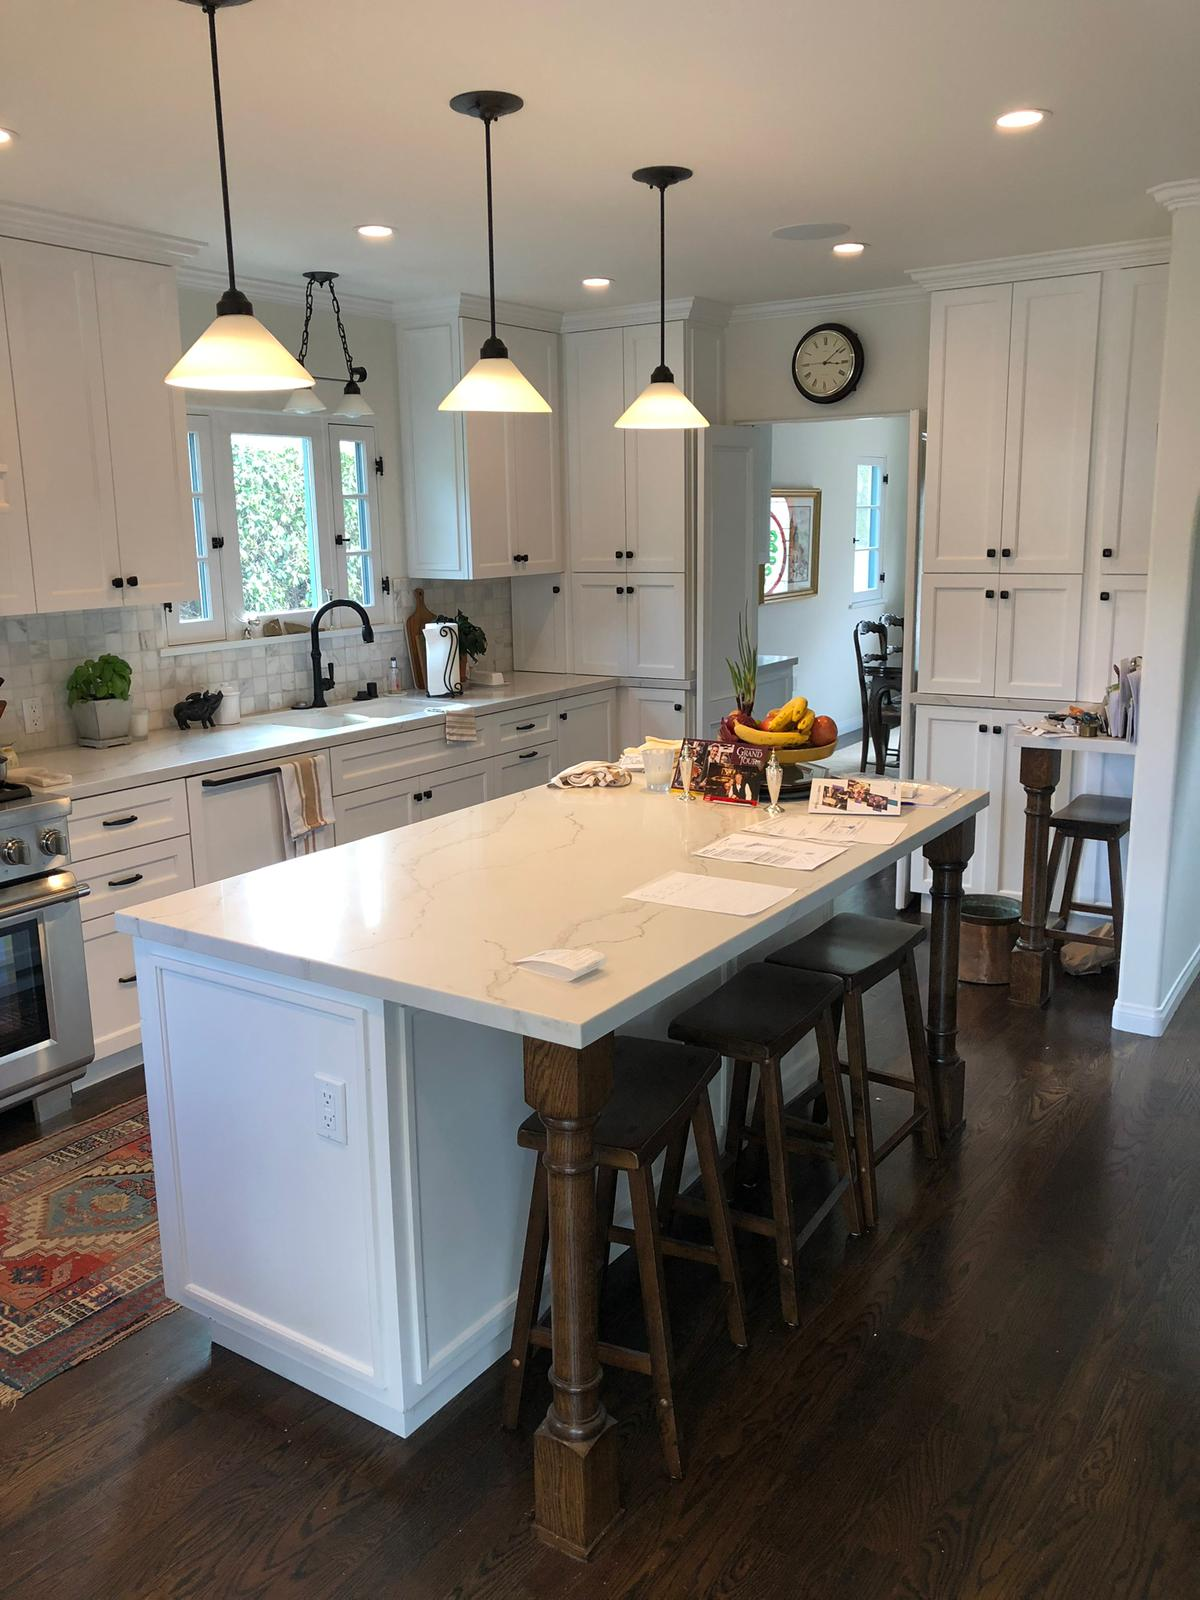 Kitchen of Your Dreams